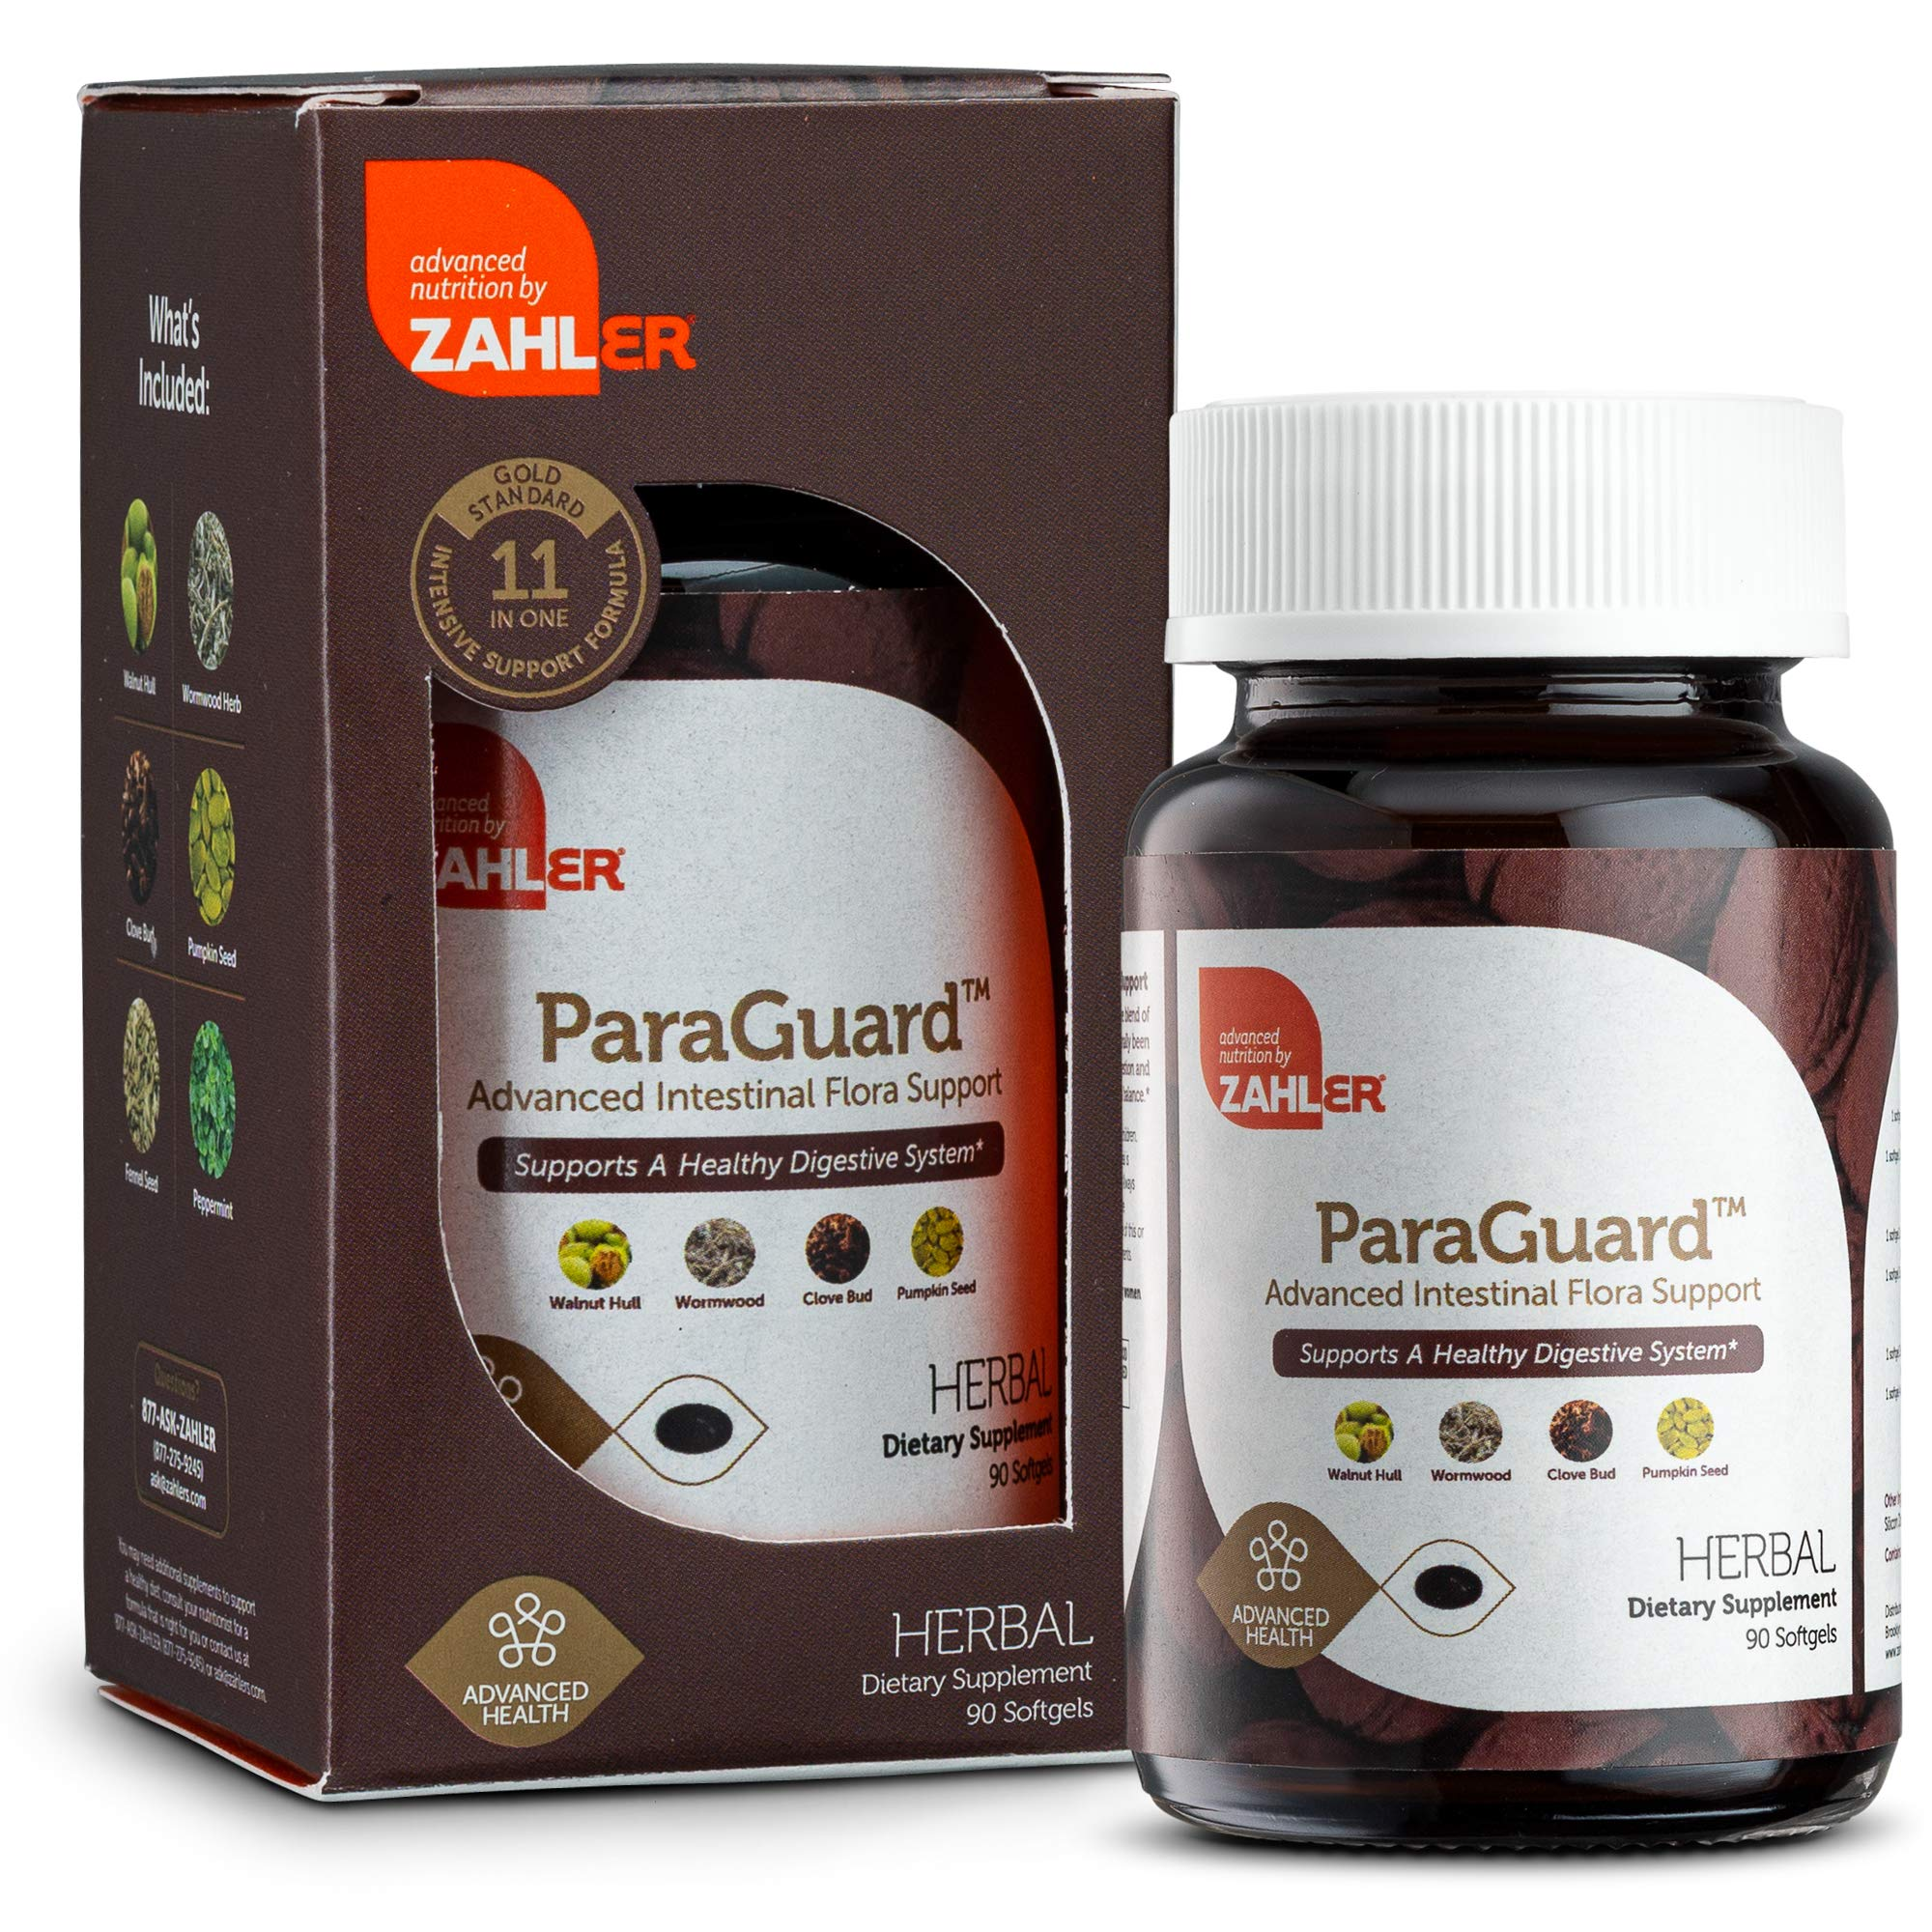 New! Zahler ParaGuard, Advanced Digestive Cleanse, Intestinal Support for Humans, Contains Wormwood, Certified Kosher 90 Tiny Softgels by Zahler